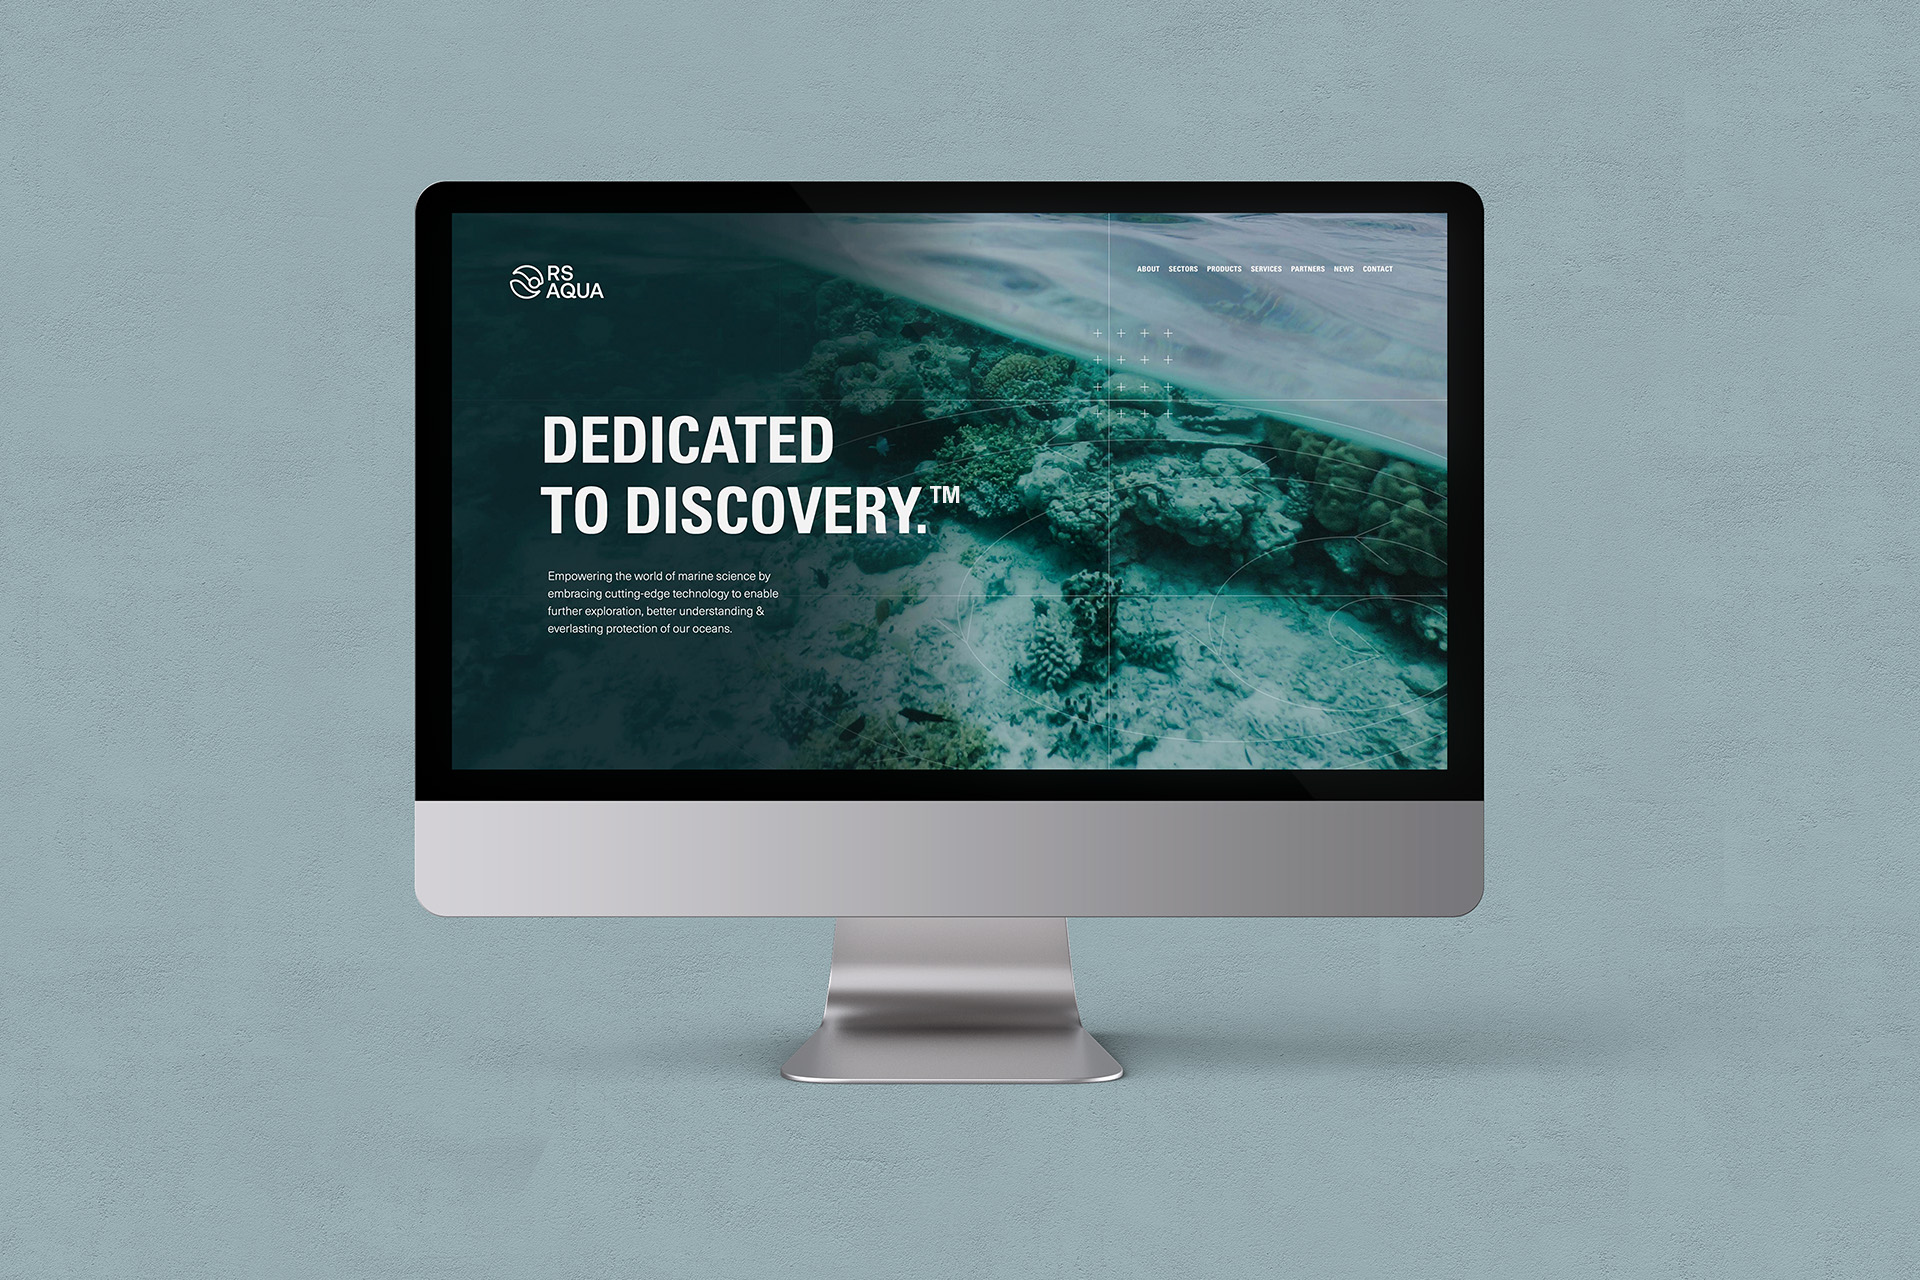 Fable&Co. Rebrand a Leading Marine Technology Business